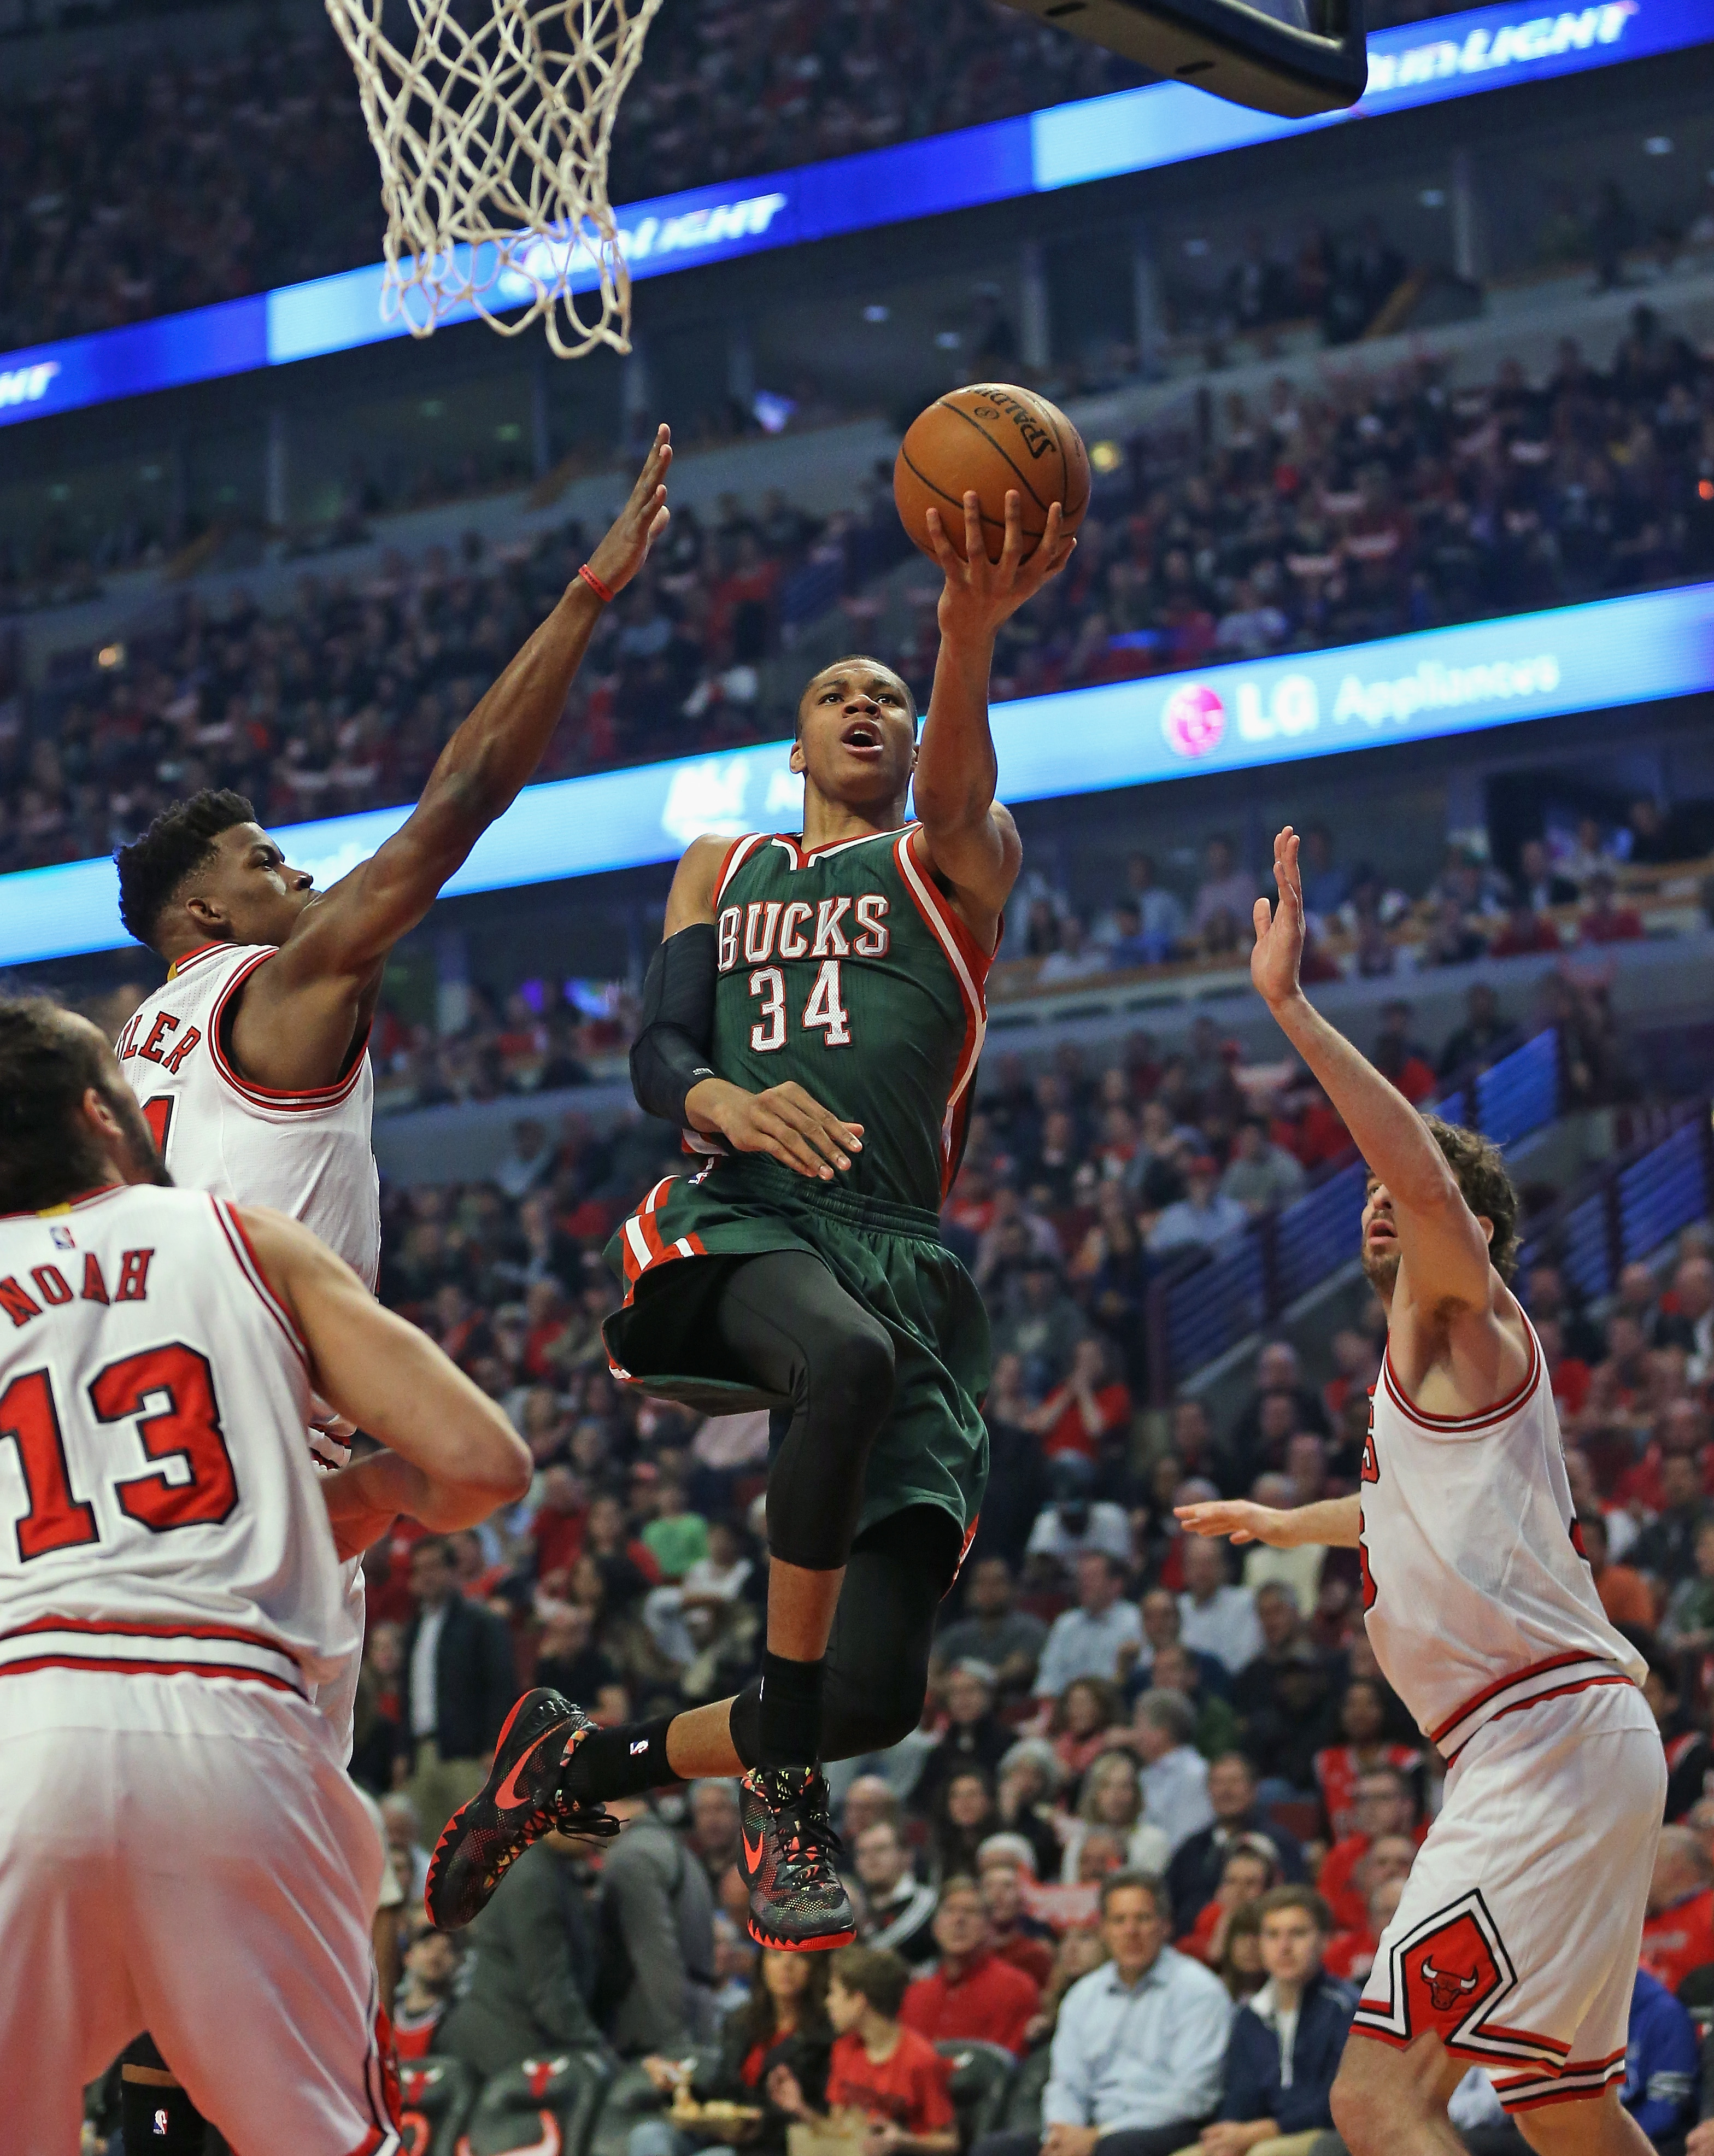 CHICAGO, IL - APRIL 20: Giannis Antetokounmpo #34 of the Milwaukee Bucks goes up for a shot over (L-R) Joakoim Noah #13, Jimmy Buter #21 and Pau Gasol #16 of the Chicago Bulls during the first round of the 2015 NBA Playoffs at the United Center on April 20, 2015 in Chicago, Illinois. NOTE TO USER: User expressly acknowledges and agress that, by downloading and or using the photograph, User is consenting to the terms and conditions of the Getty Images License Agreement. (Photo by Jonathan Daniel/Getty Images)